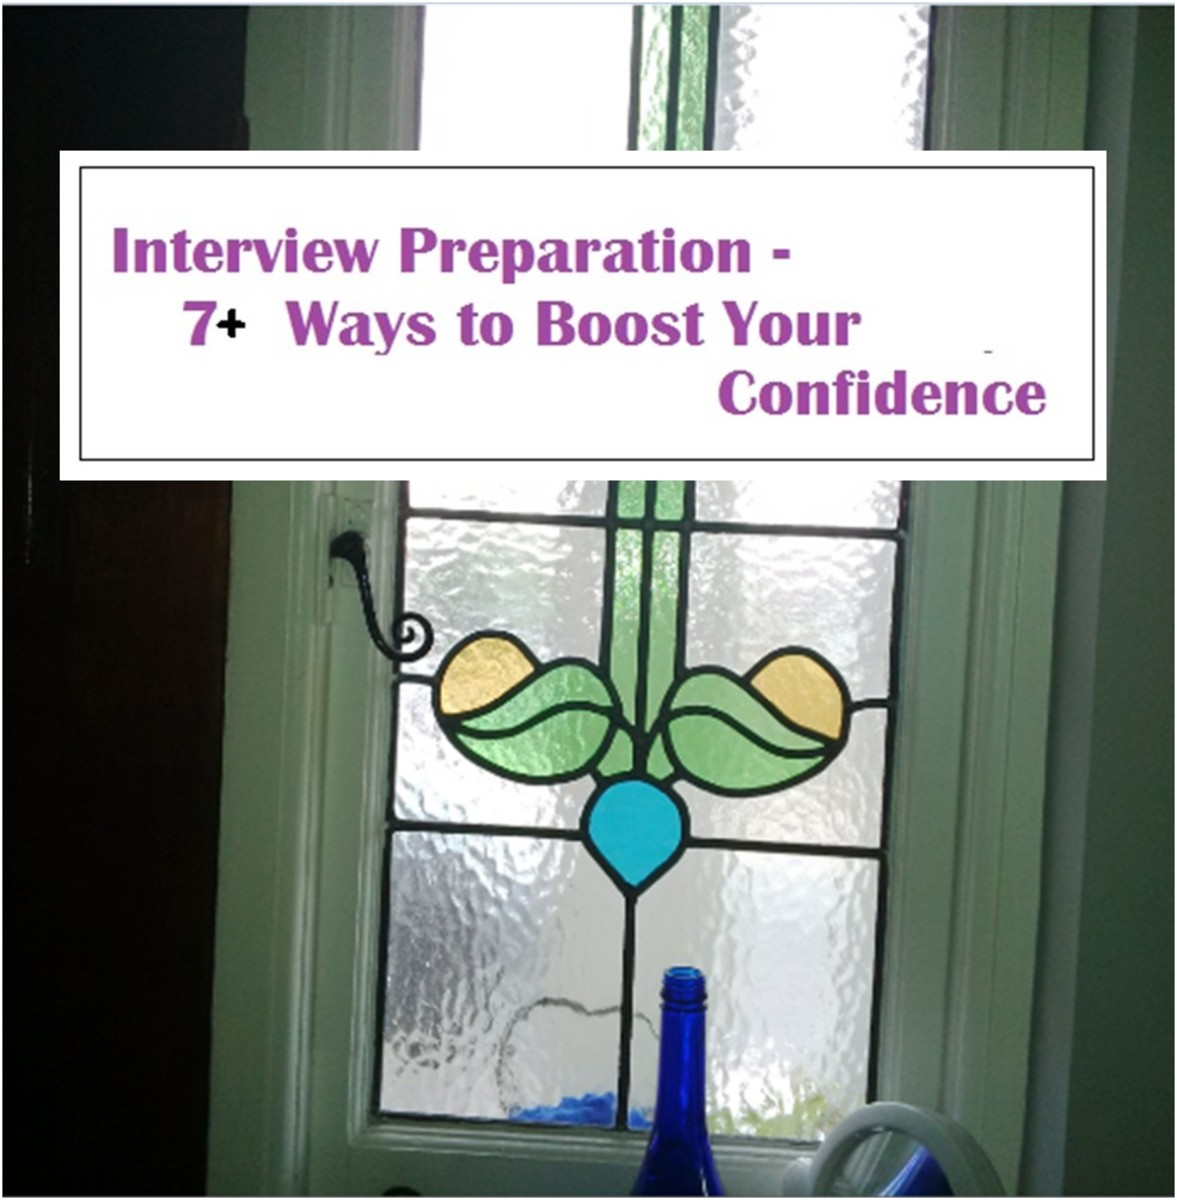 Interview Preparation: 7+ Essential Ways to Boost Your Confidence